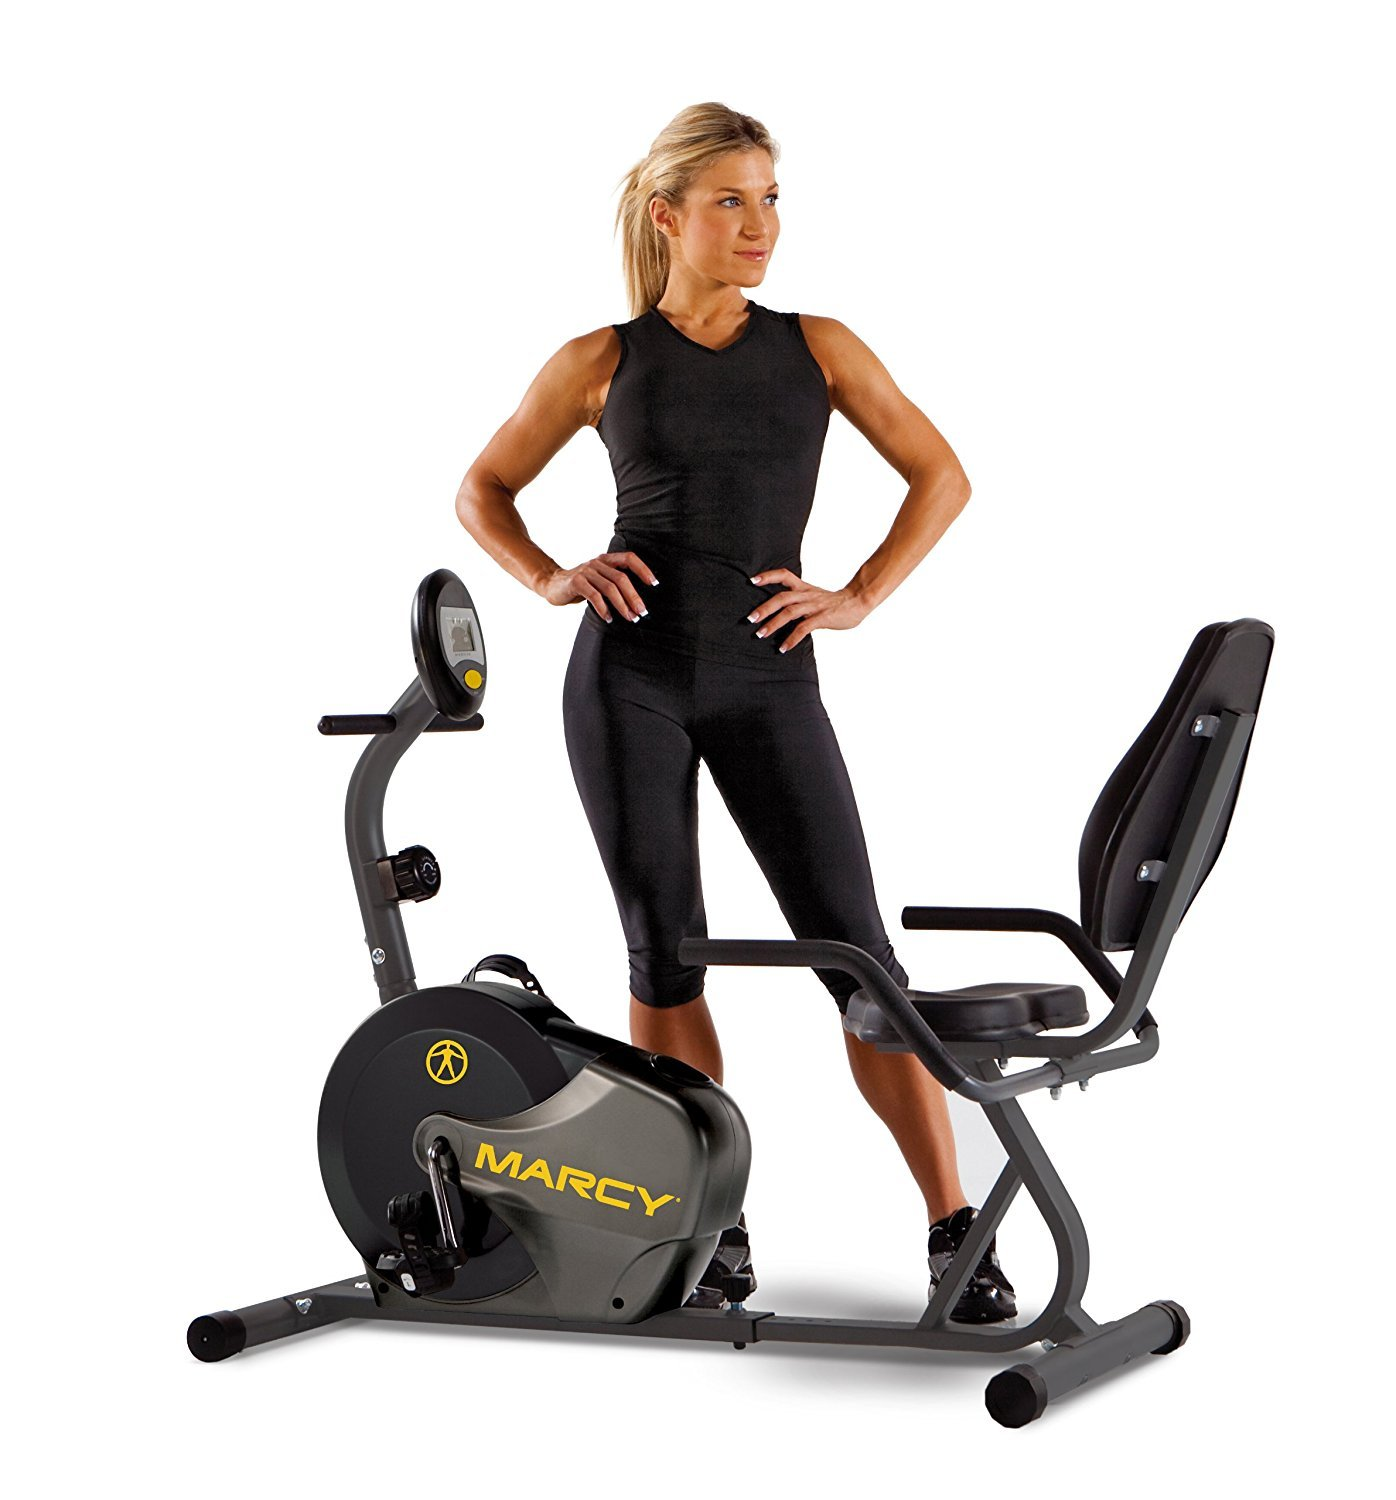 Marcy Magnetic Recumbent Exercise Bike with Adjustable Length and 8 Resistance Levels NS-716R [並行輸入品]